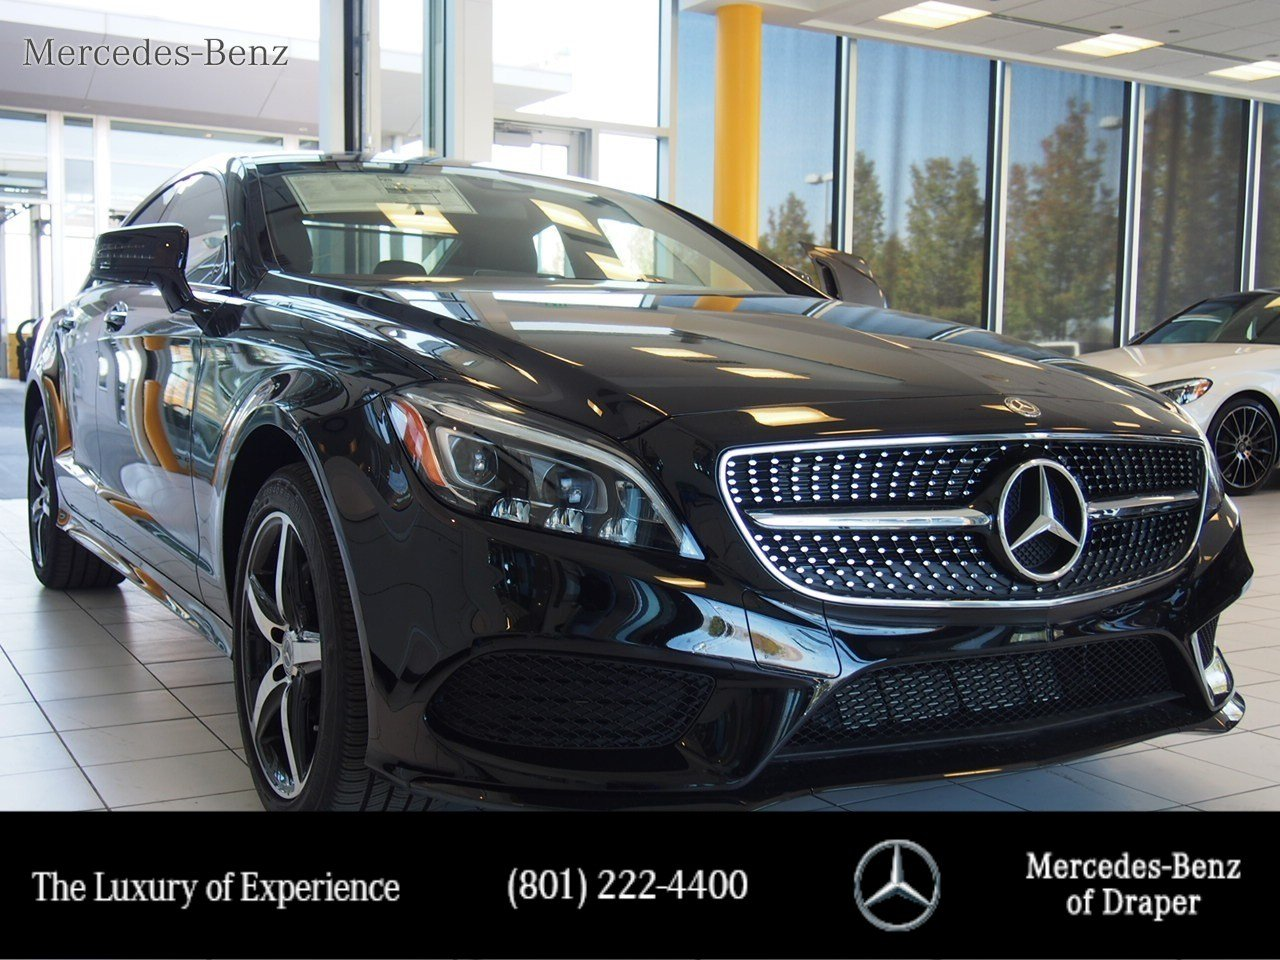 New 2018 mercedes benz cls cls 550 coupe 4matic coupe in for Mercedes benz financial services online payment